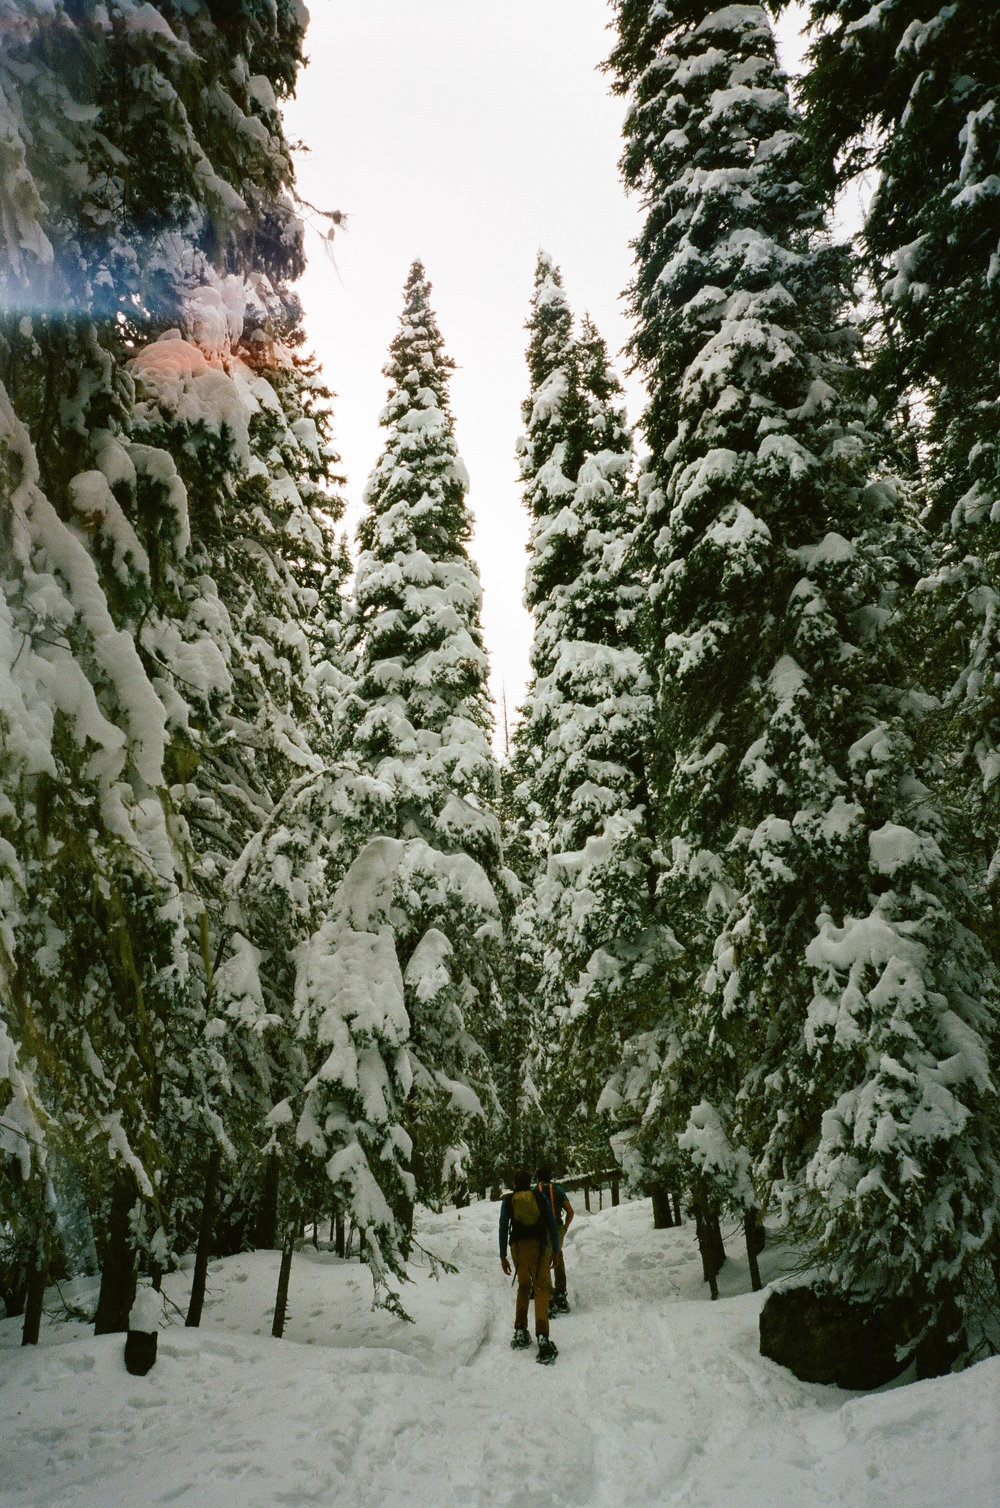 Snowshoeing in 35 mm